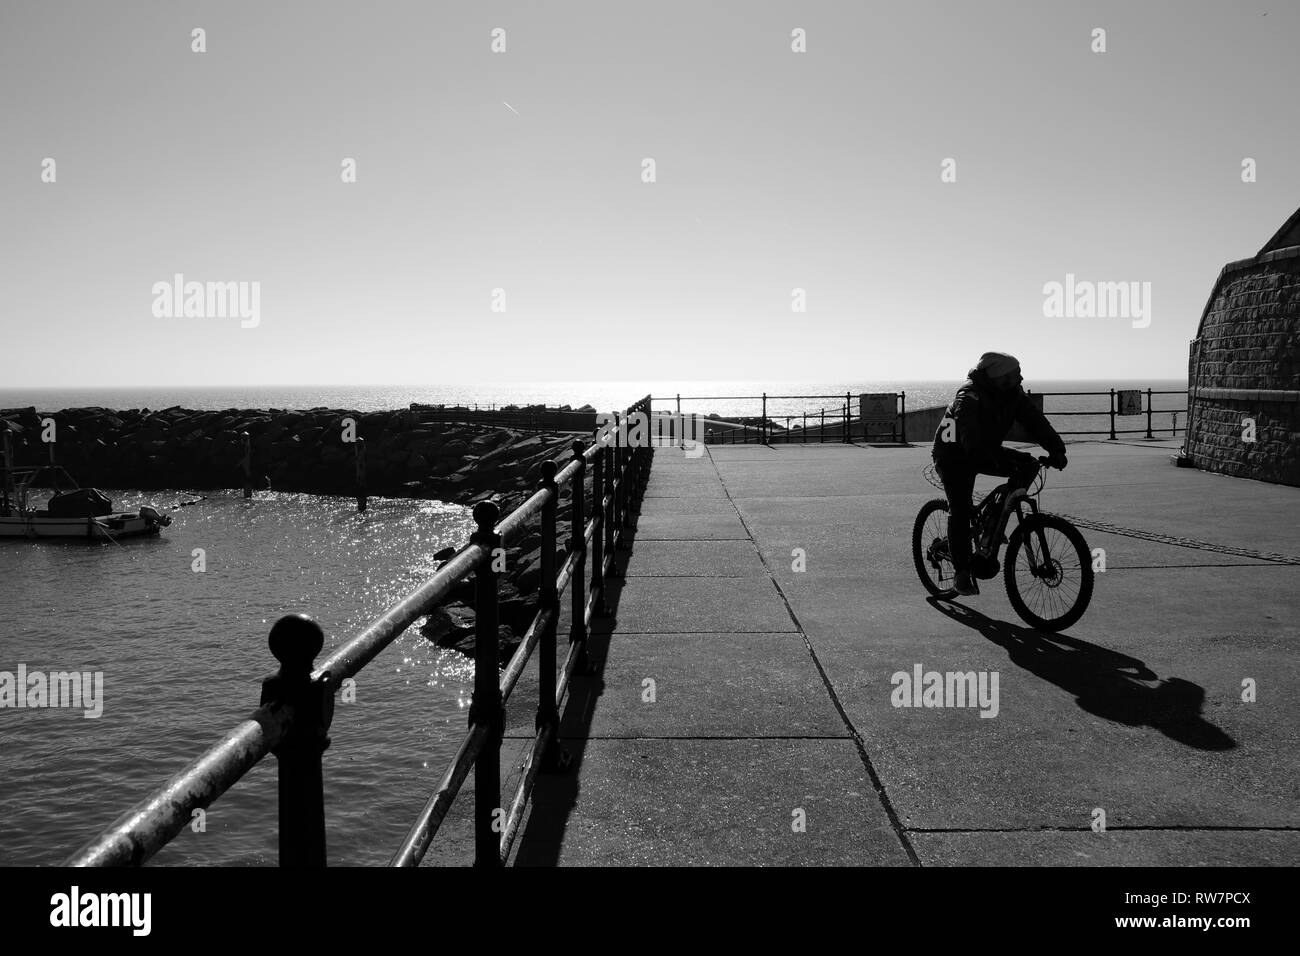 A cyclist on the seafront at Ventnor Harbour, Ventnor, Isle of Wight, England, UK. - Stock Image